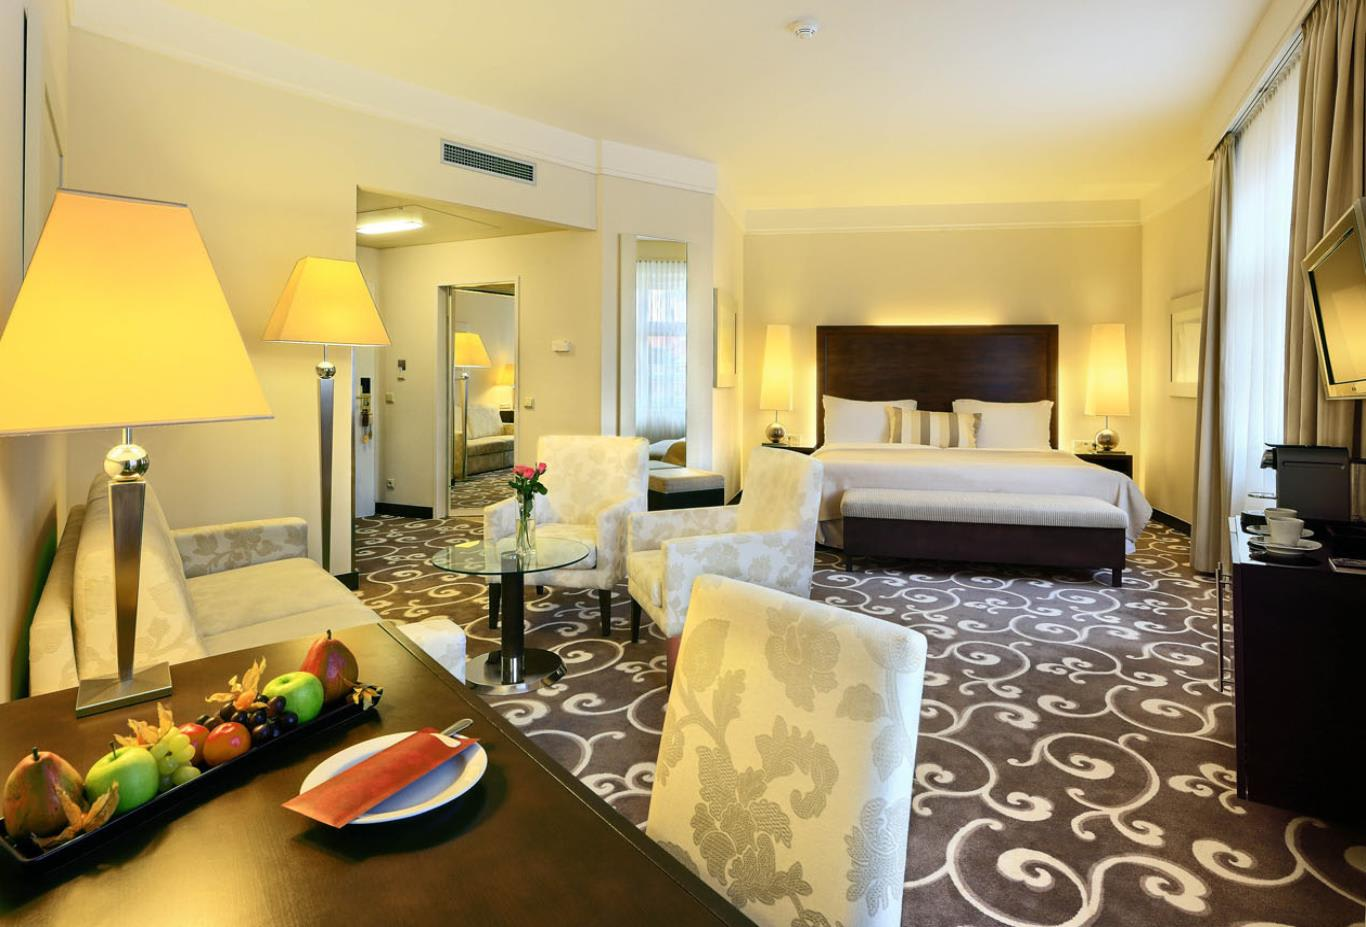 Rooms - Executive Room